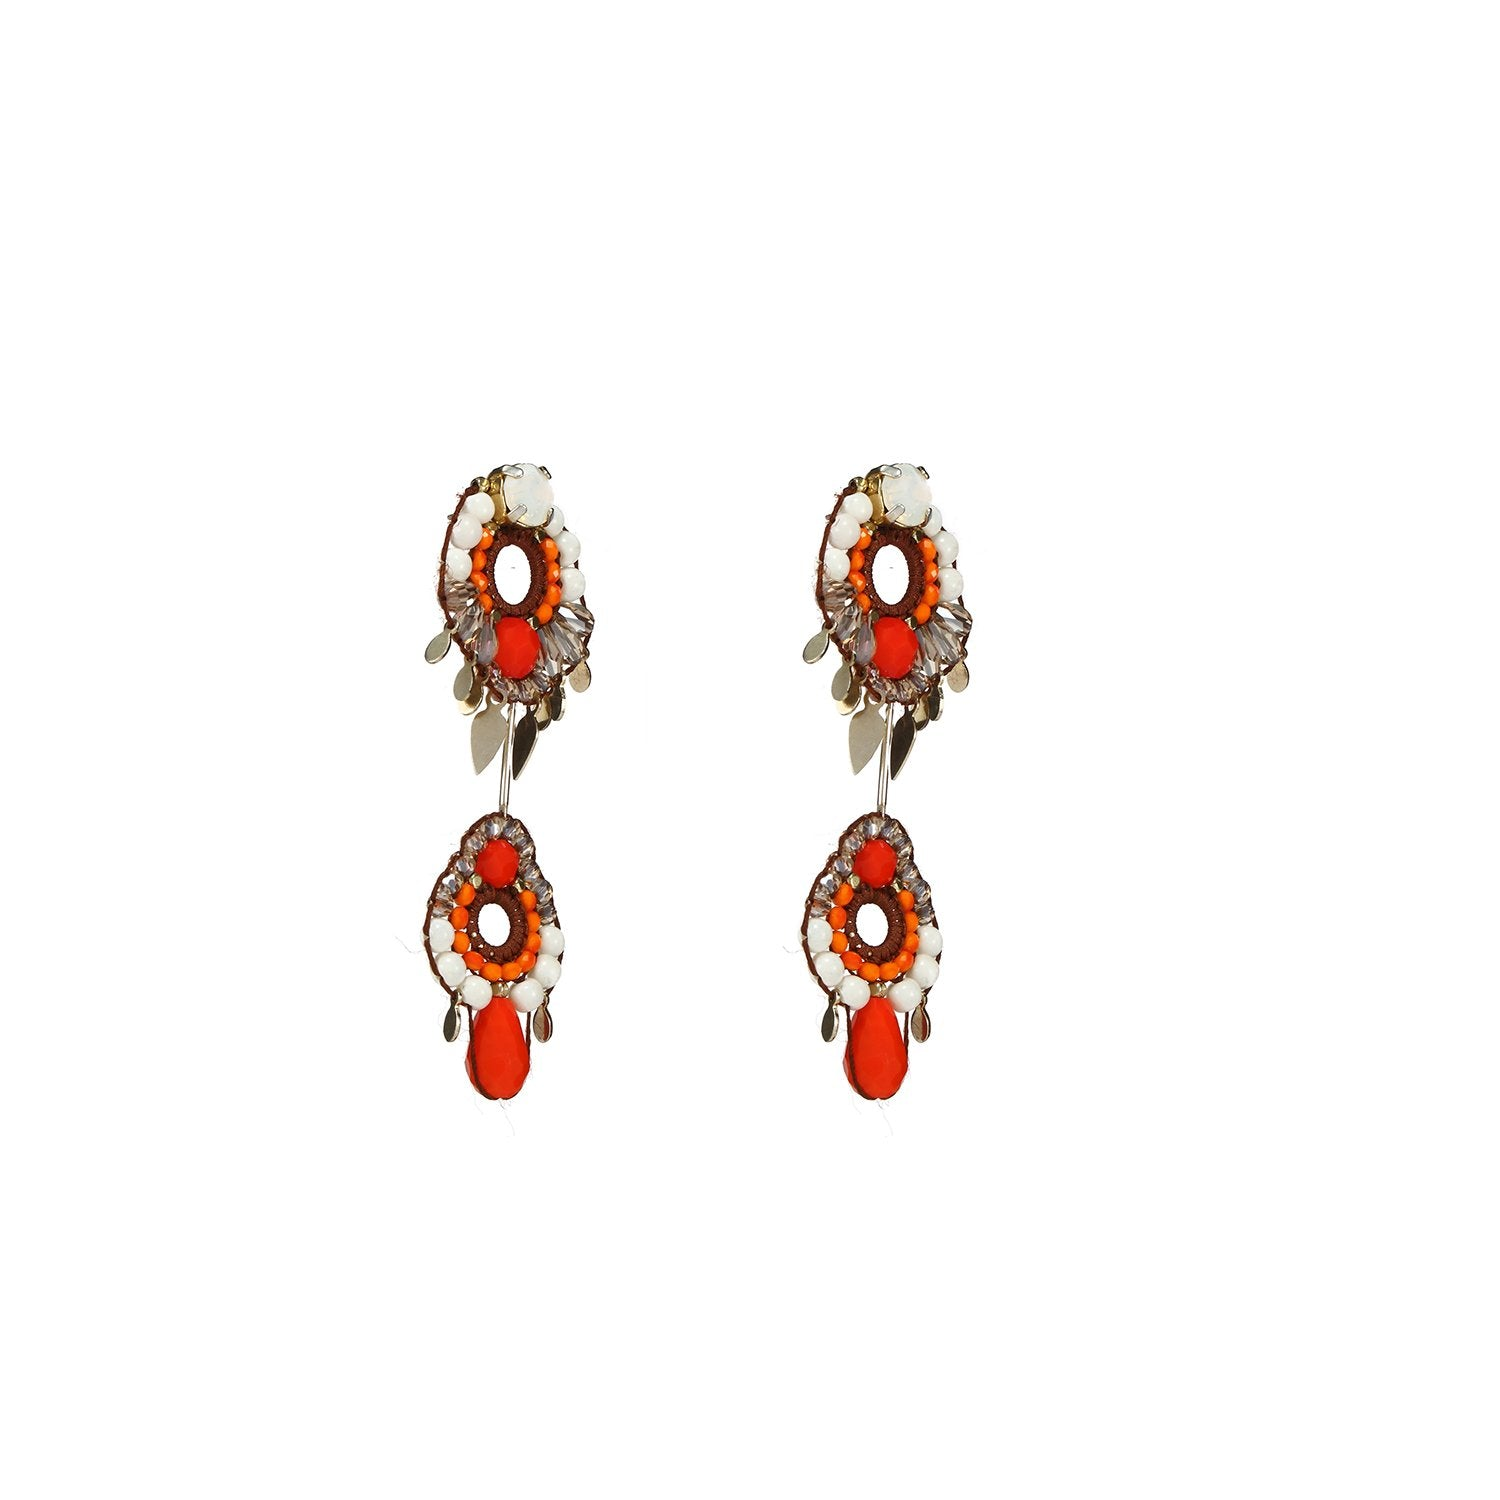 Buy Statement Earrings